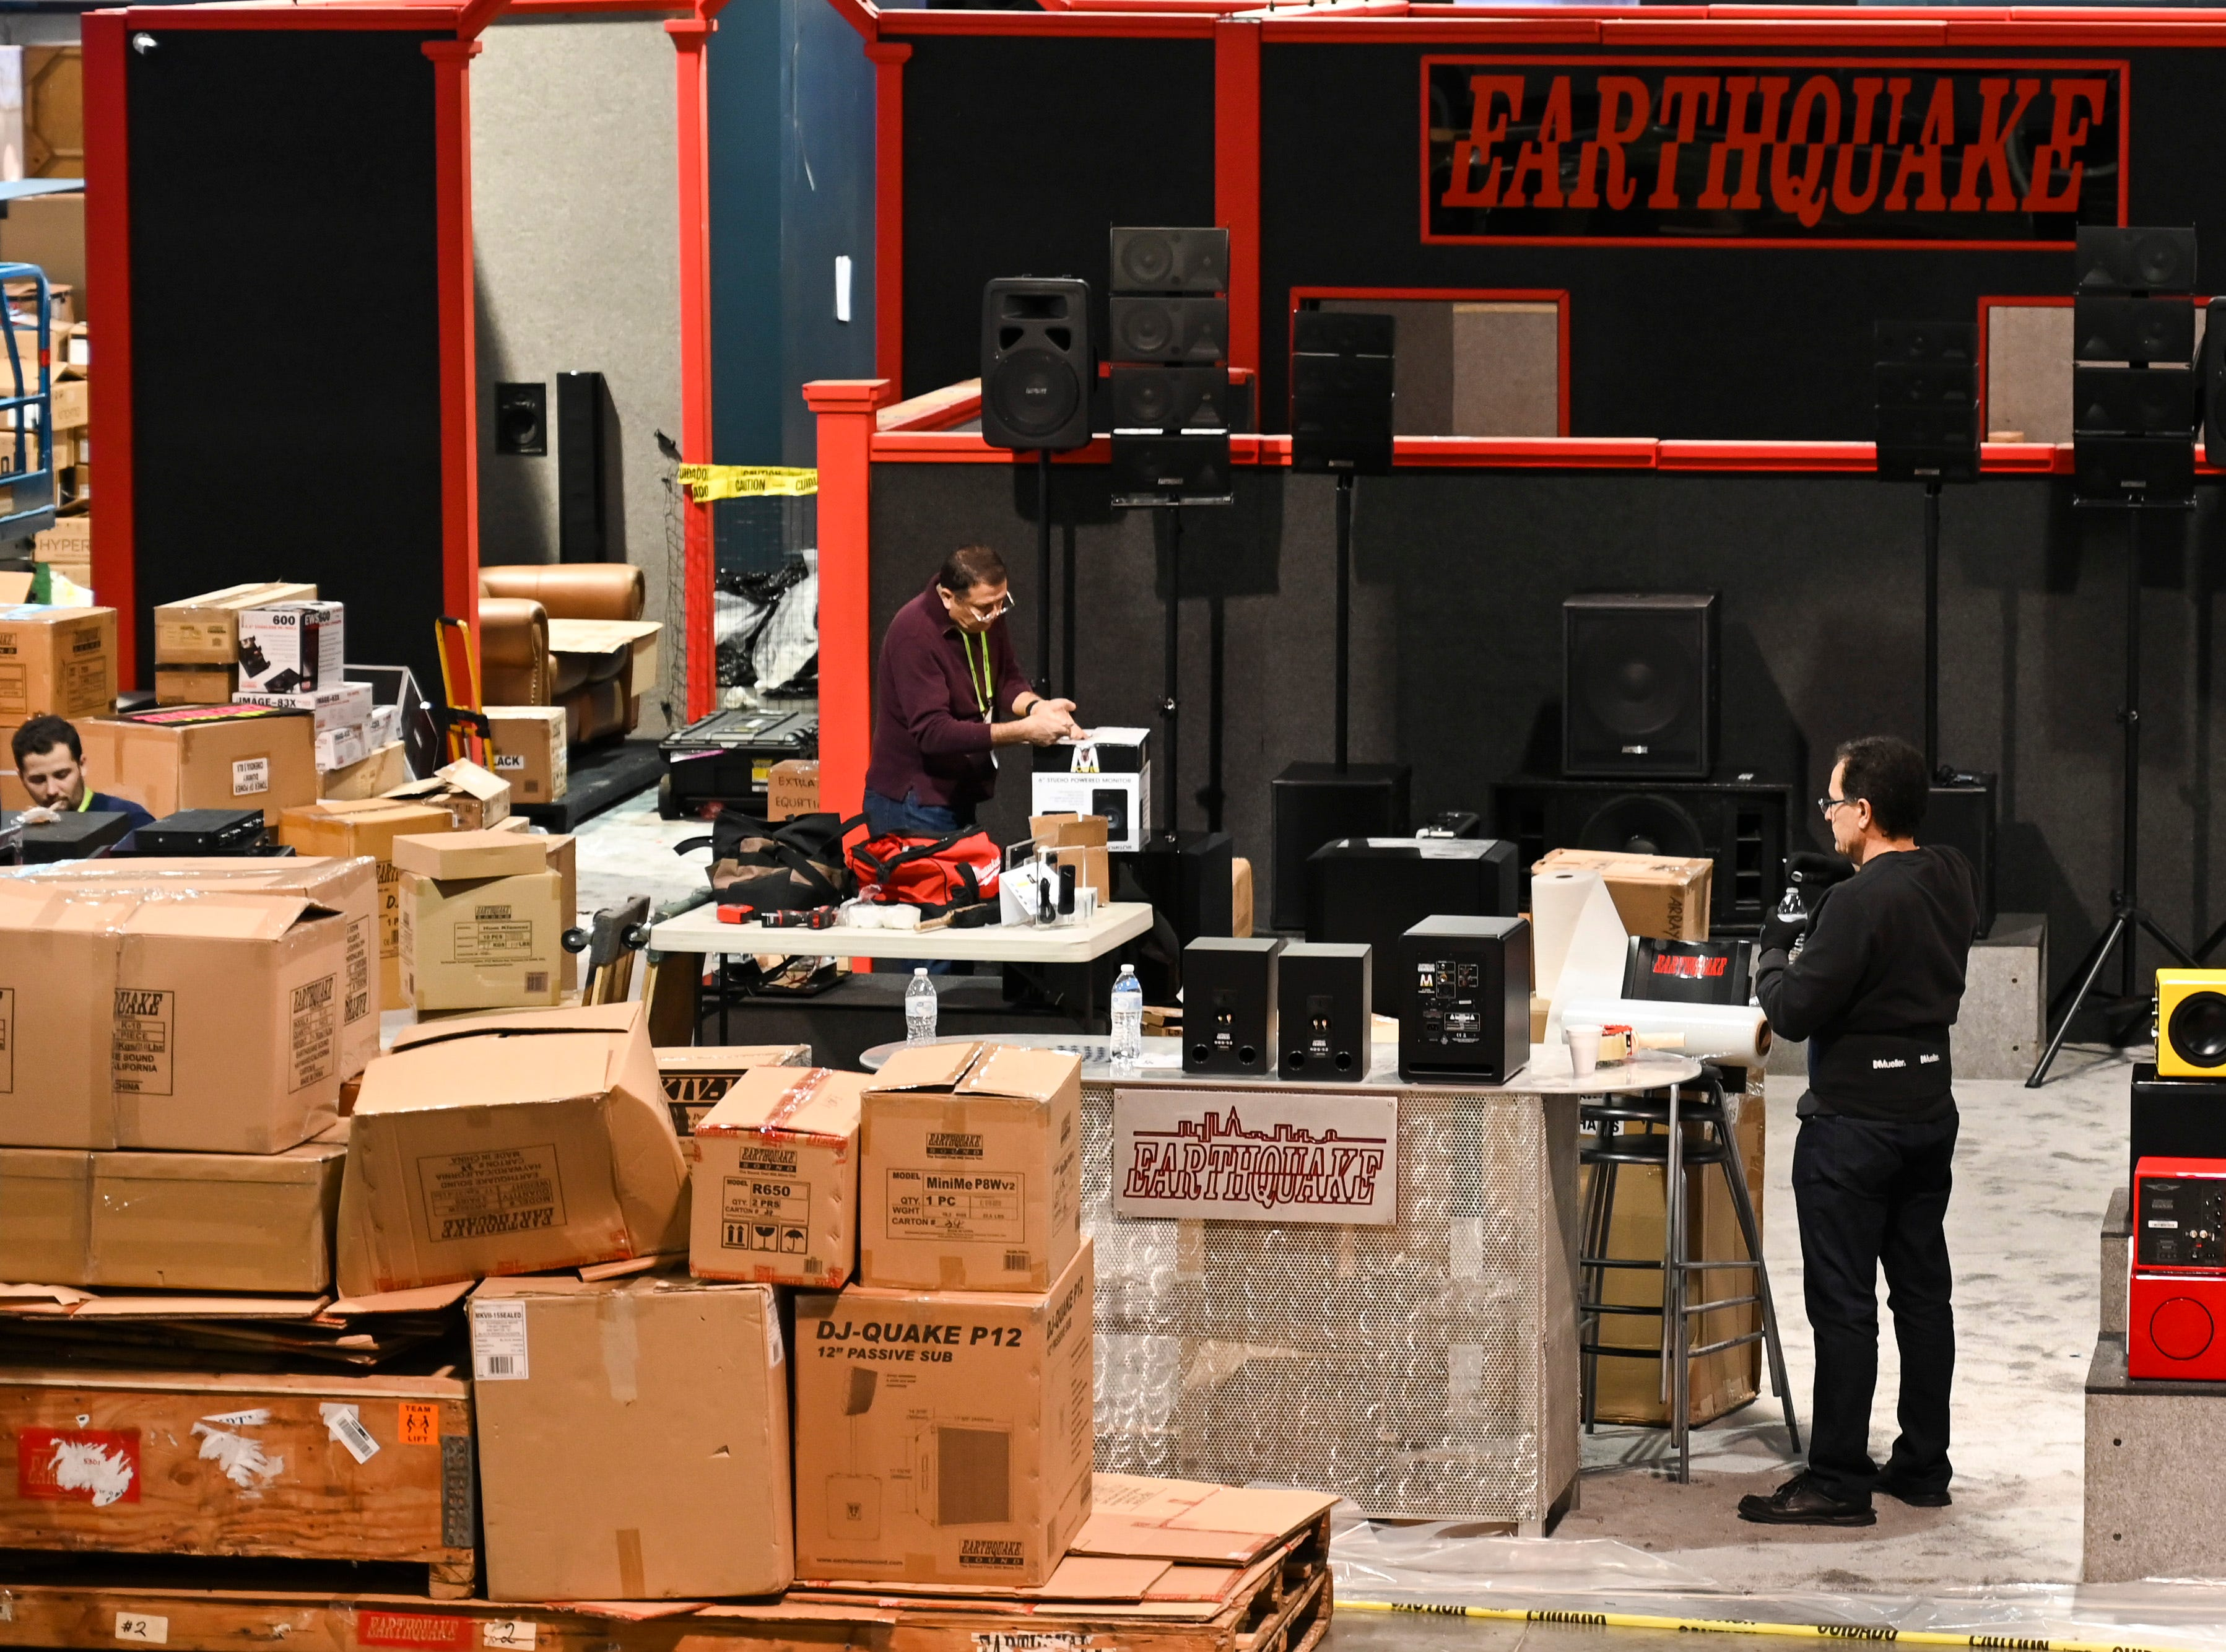 Pallets and crates stacked up in the Las Vegas Convention Center Central Hall as workers put together displays.